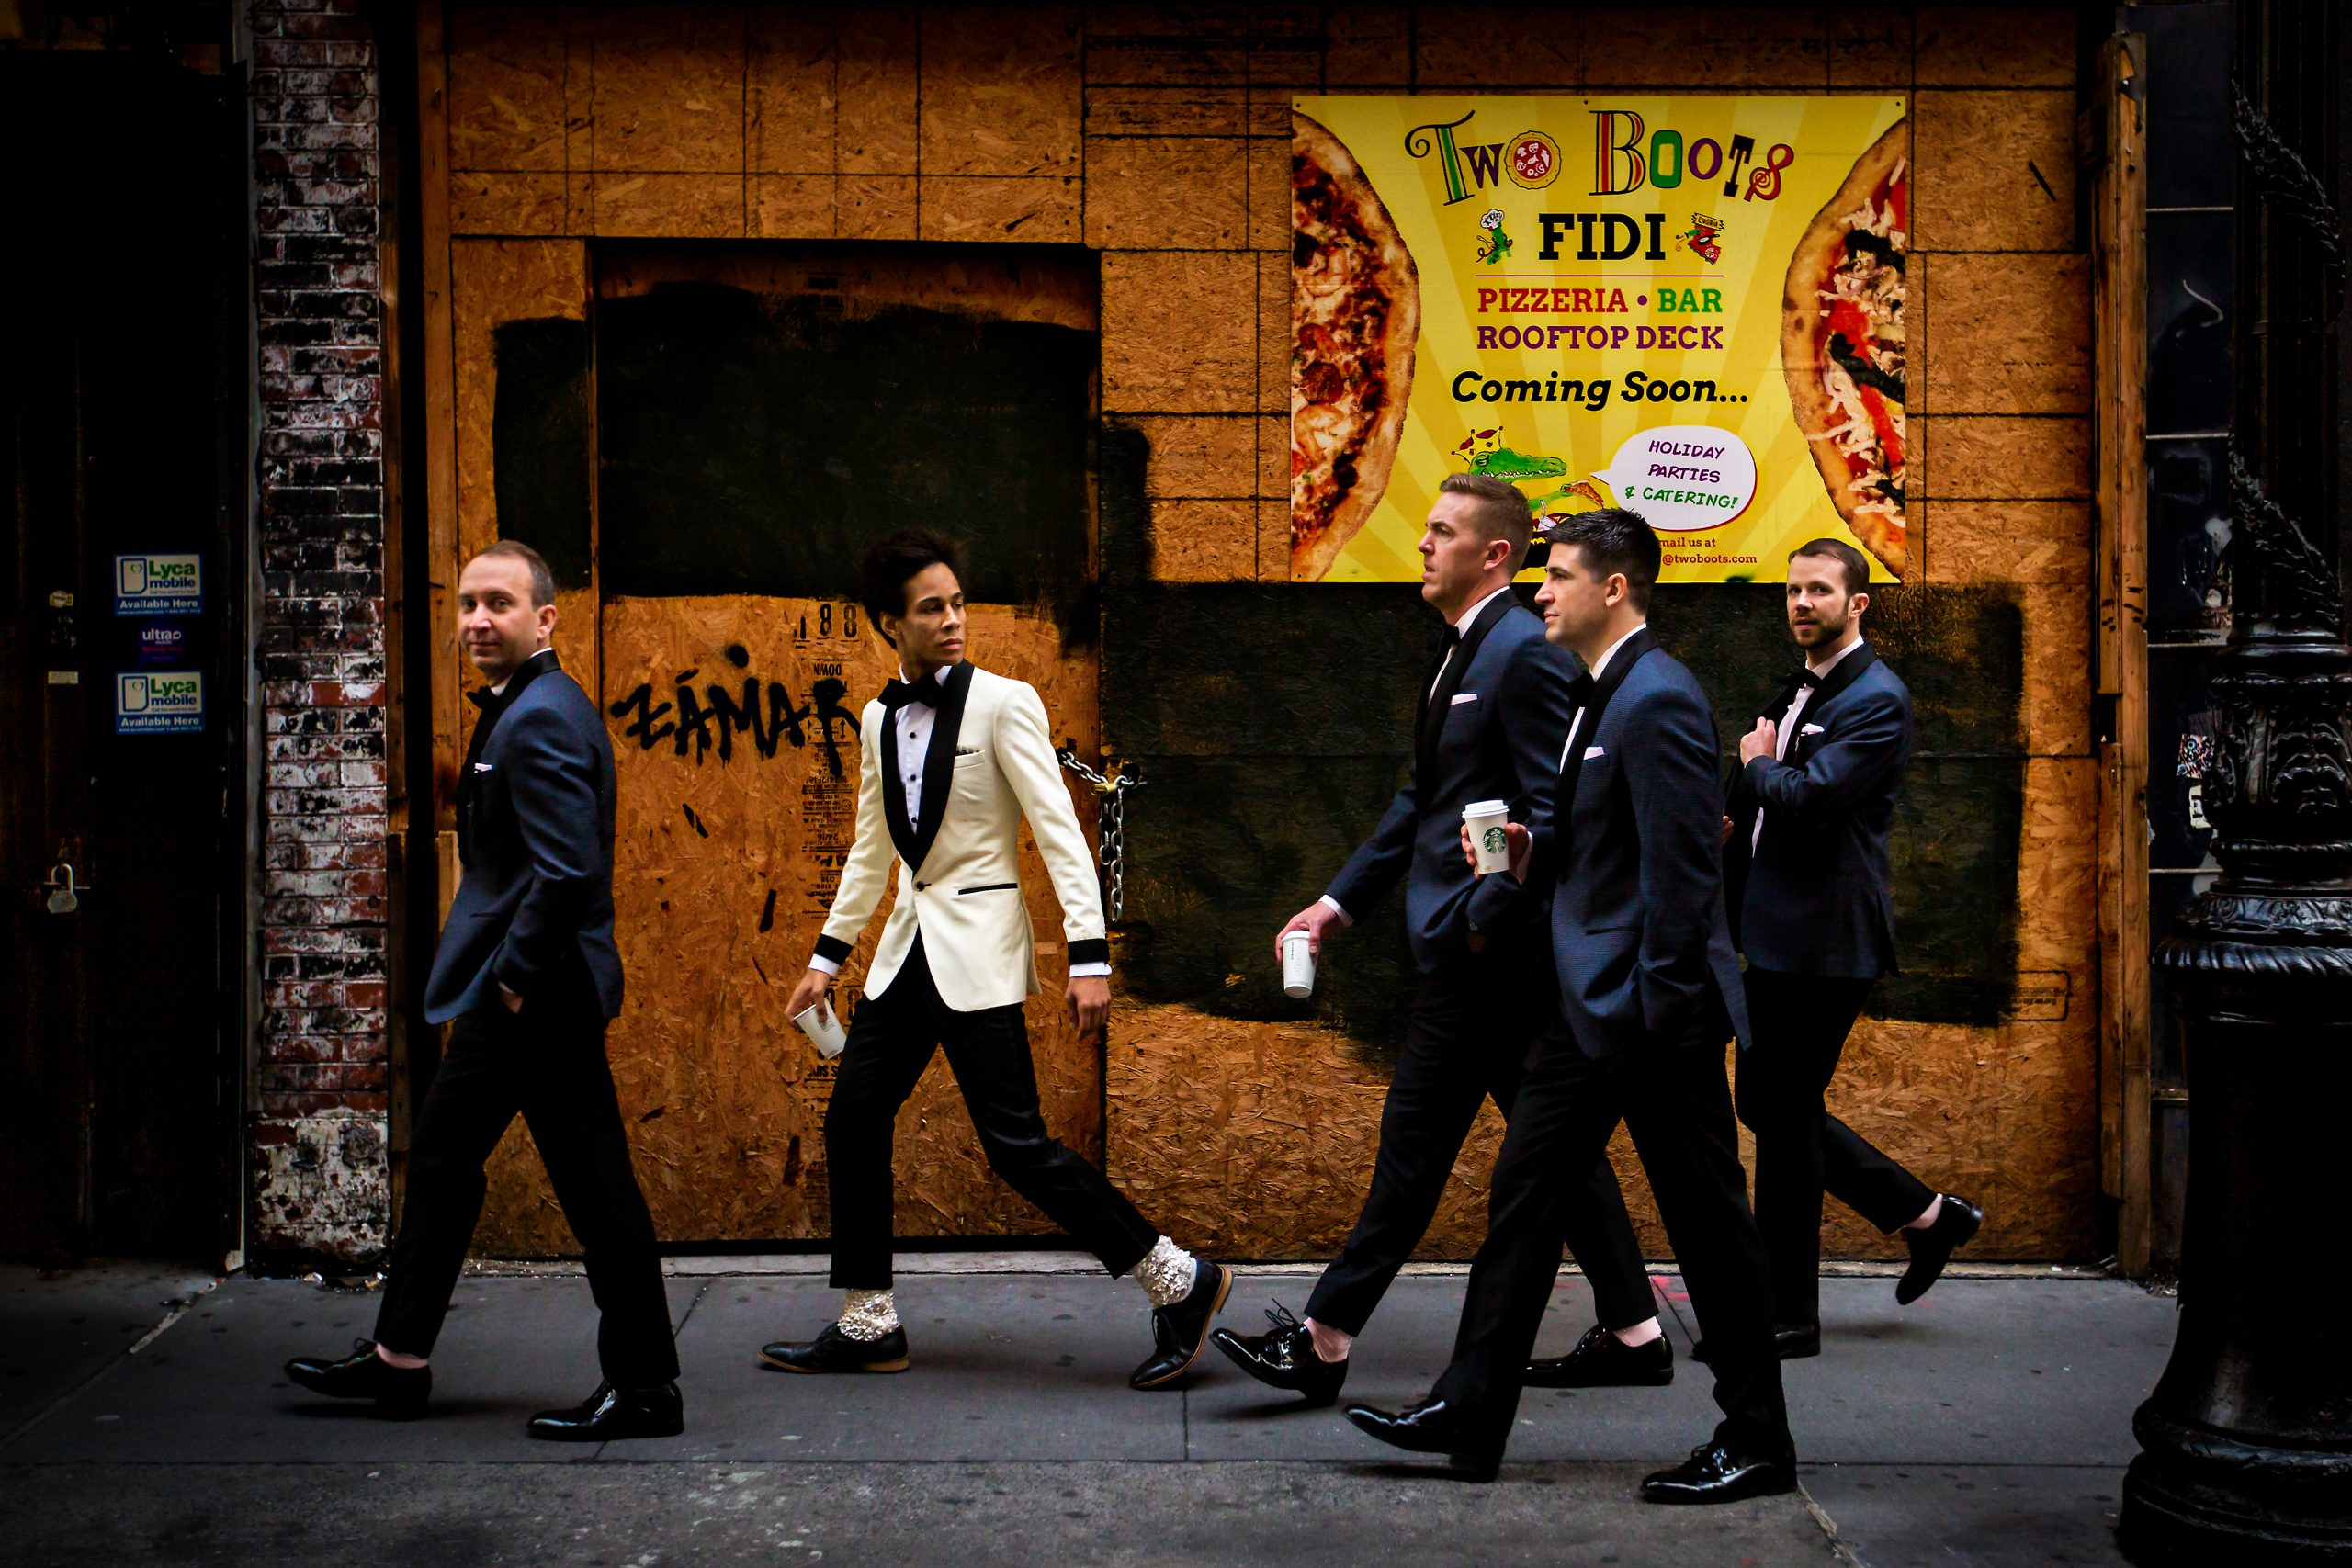 A groom and his groomsmen walking through the streets of New York